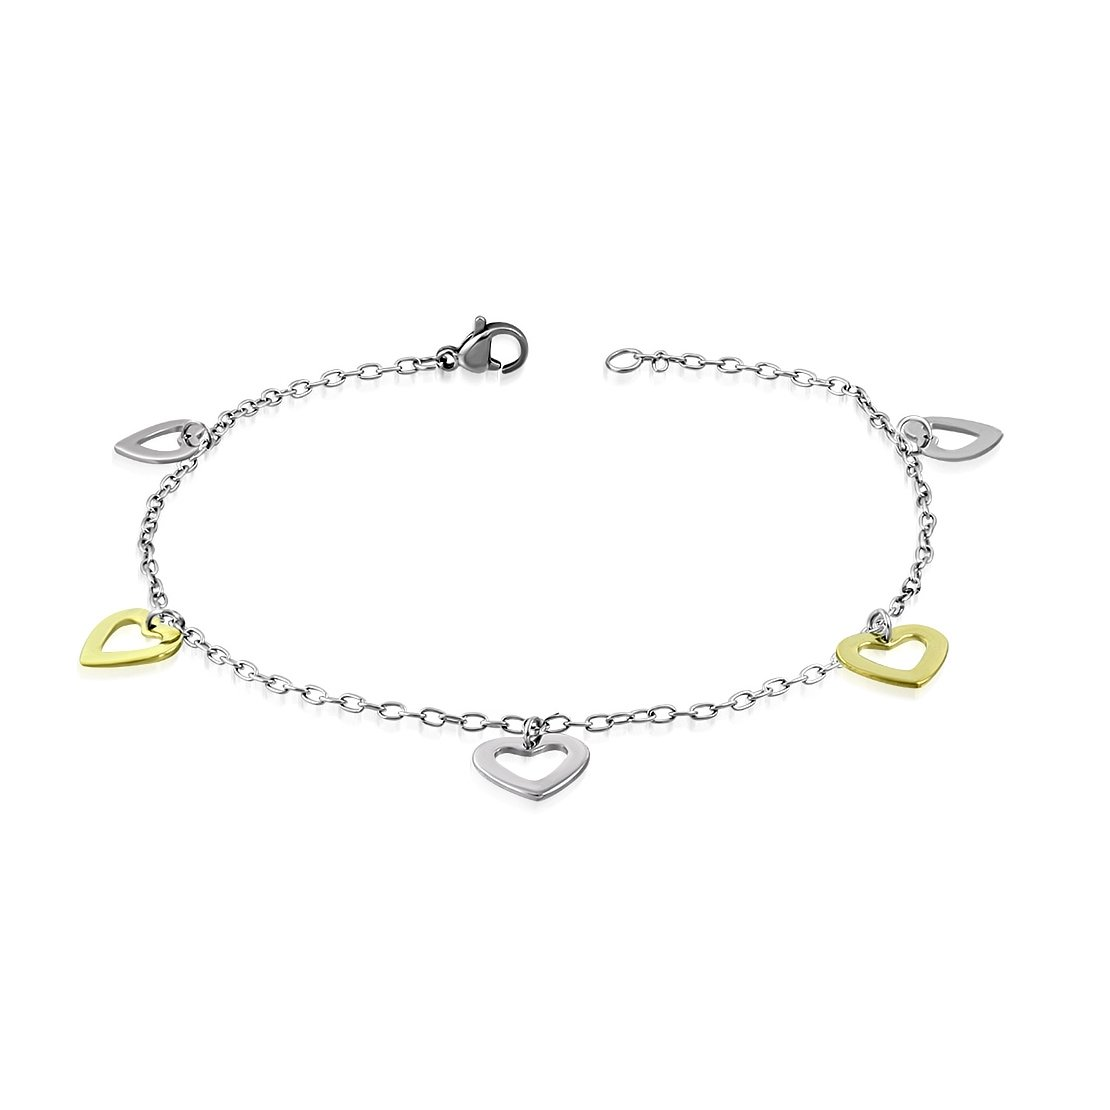 Stainless Steel 2 Color Open Love Heart Charm Bracelet// Anklet with Extender Chain